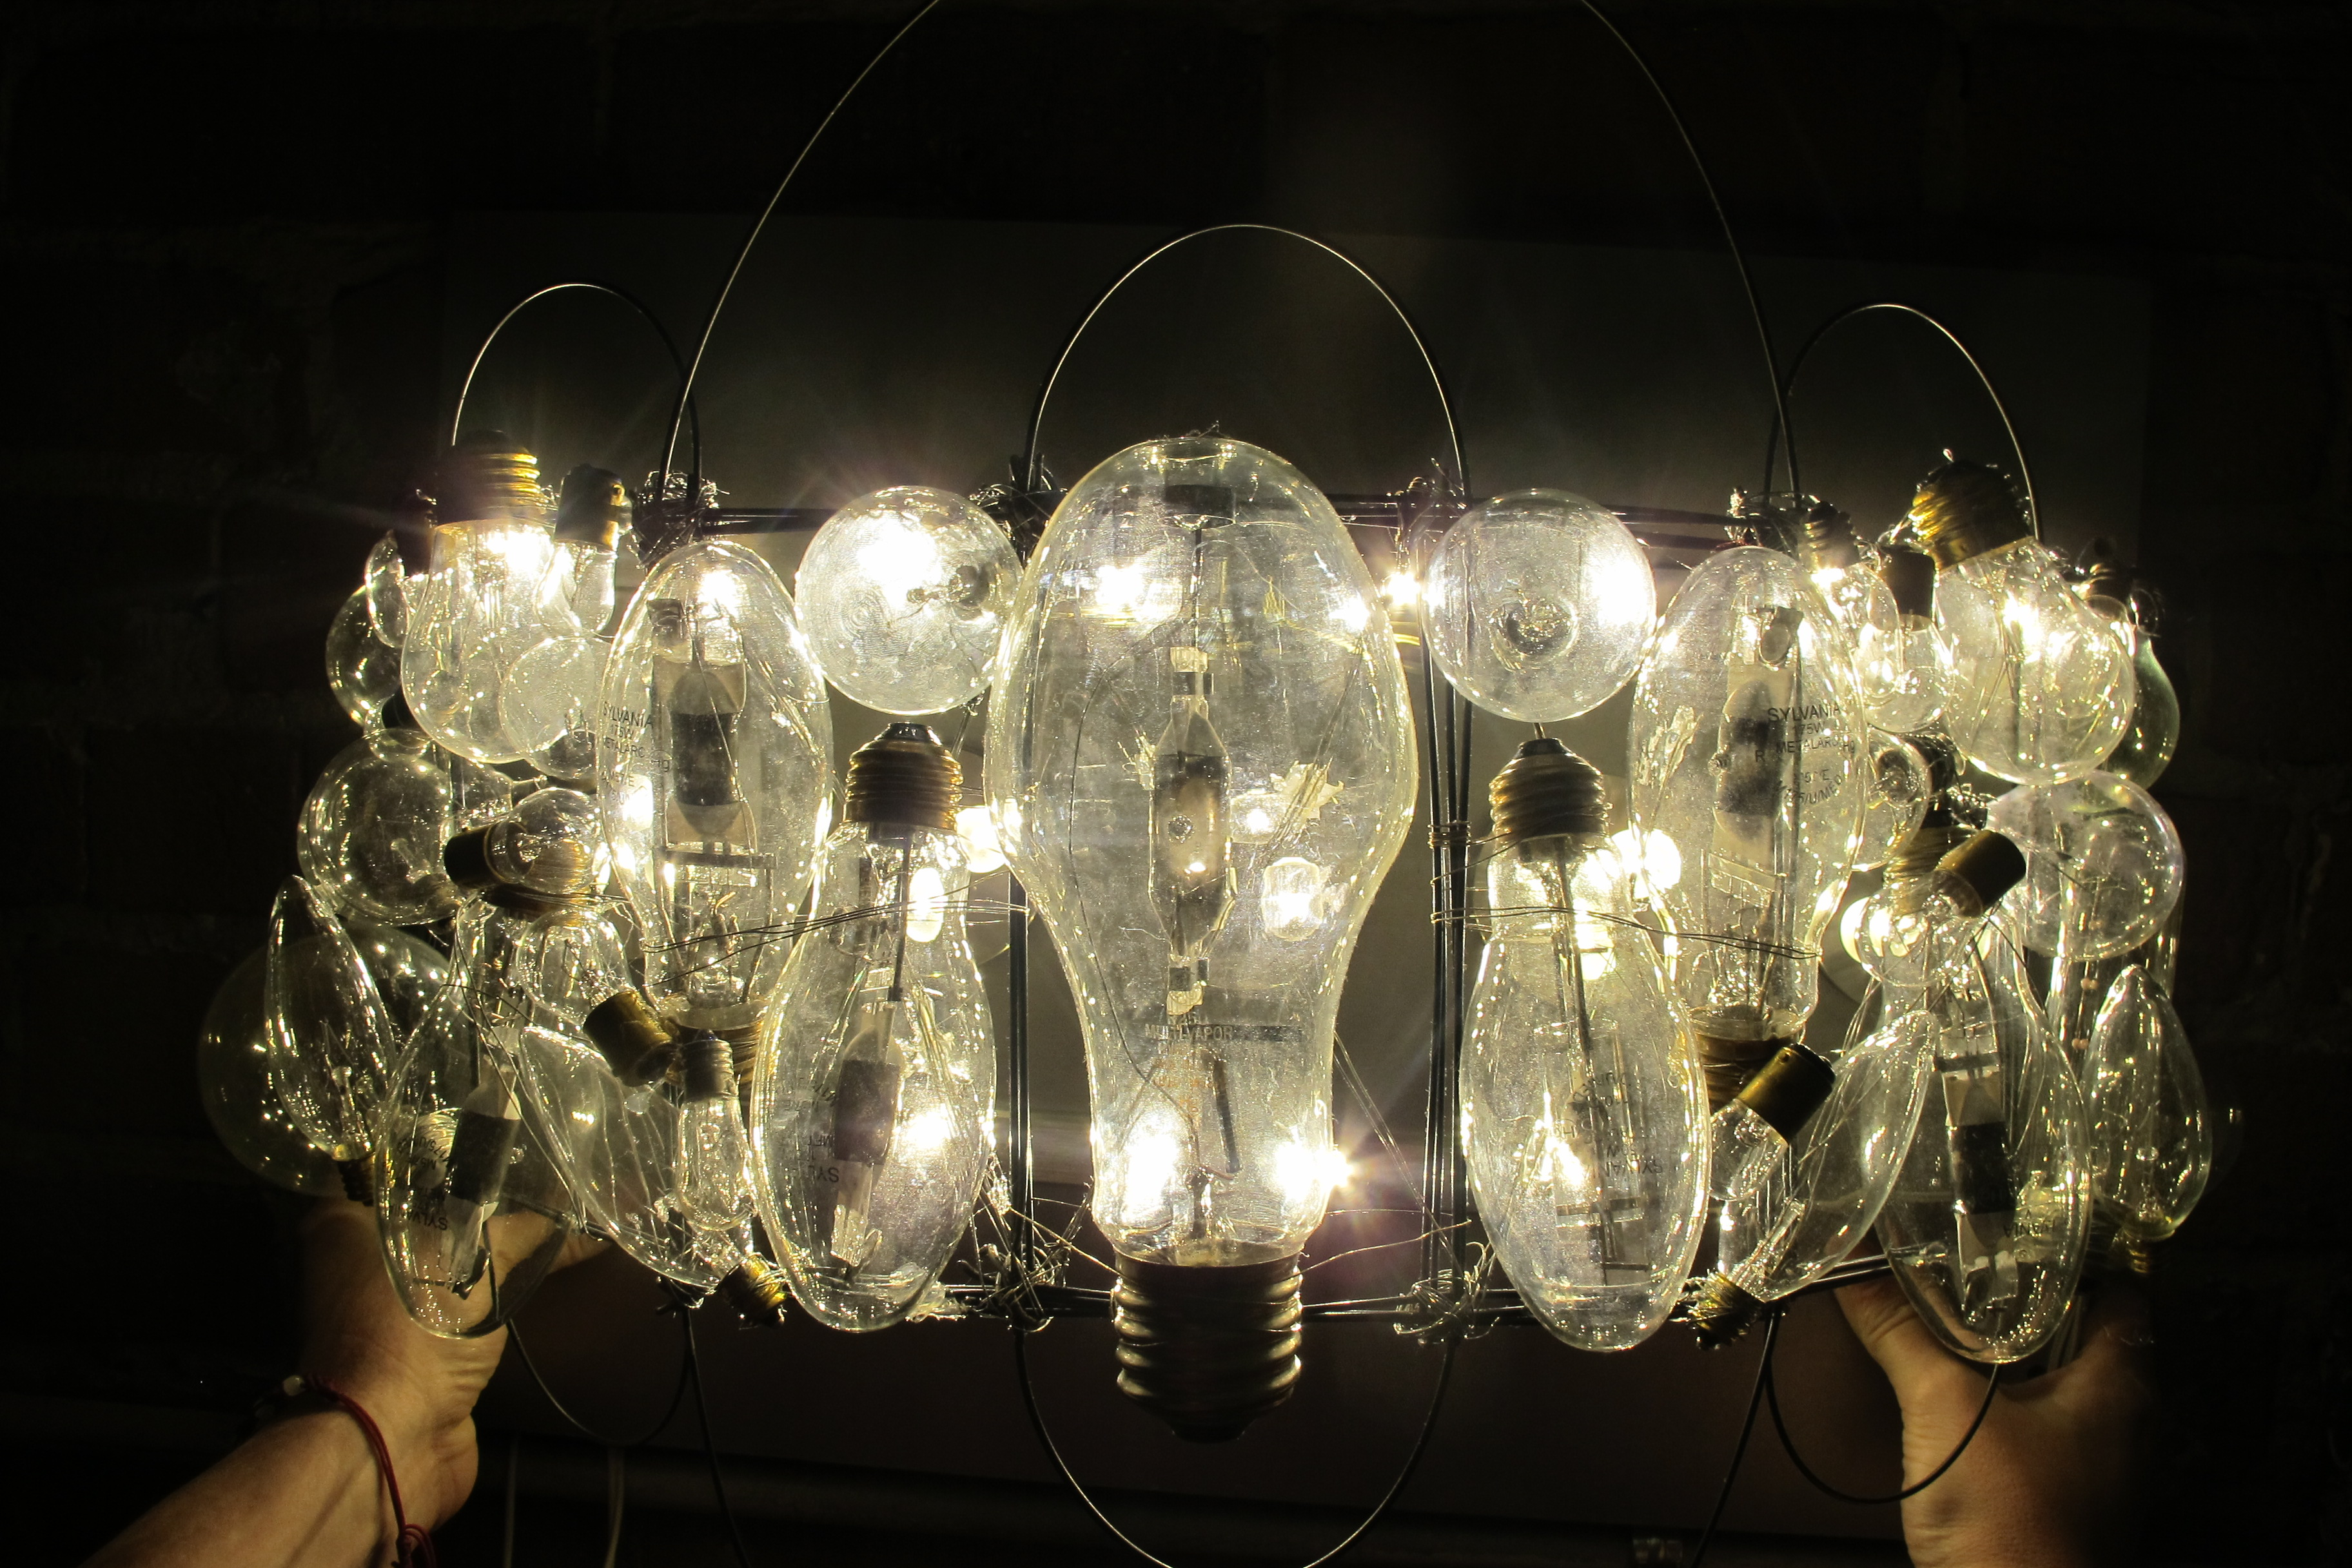 Incandescent Bulb Wall Sconce Illuminated with LED Bar and Puck Lights